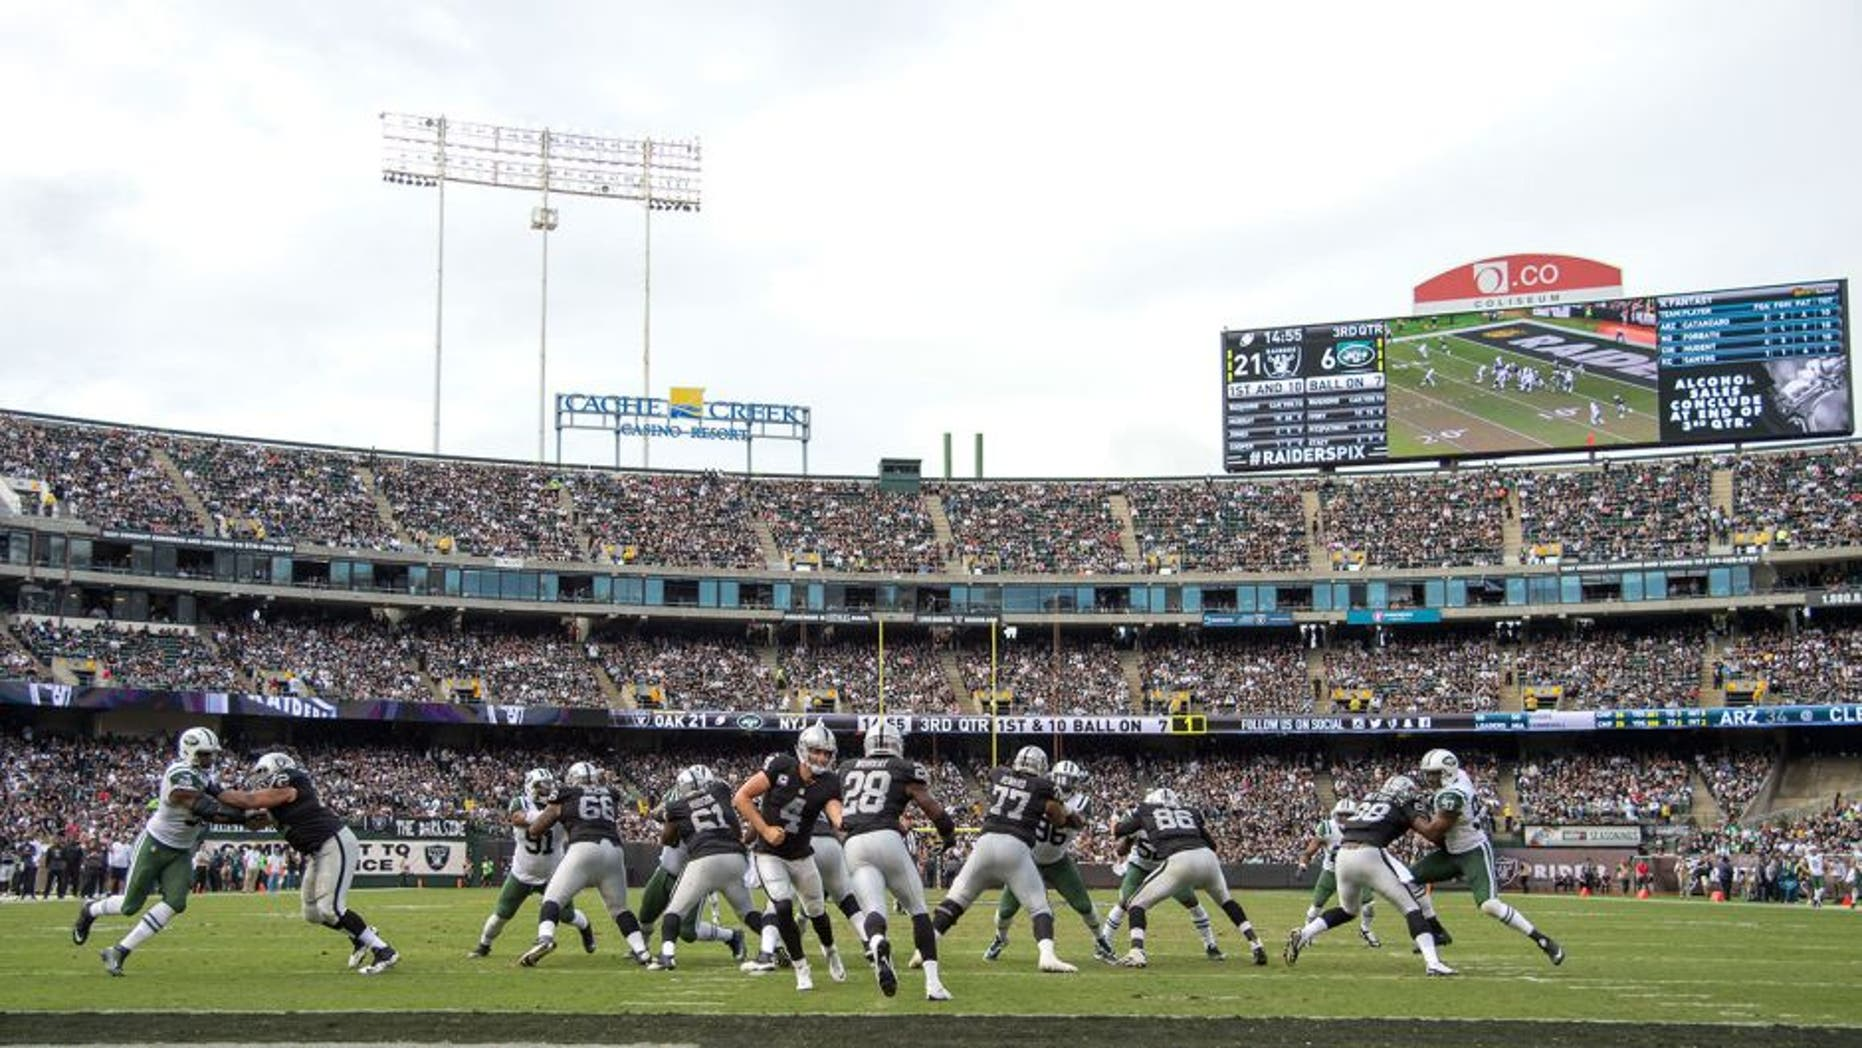 November 1, 2015; Oakland, CA, USA; Oakland Raiders quarterback Derek Carr (4) hands the football off to running back Latavius Murray (28) during the third quarter against the New York Jets at O.co Coliseum. Mandatory Credit: Kyle Terada-USA TODAY Sports